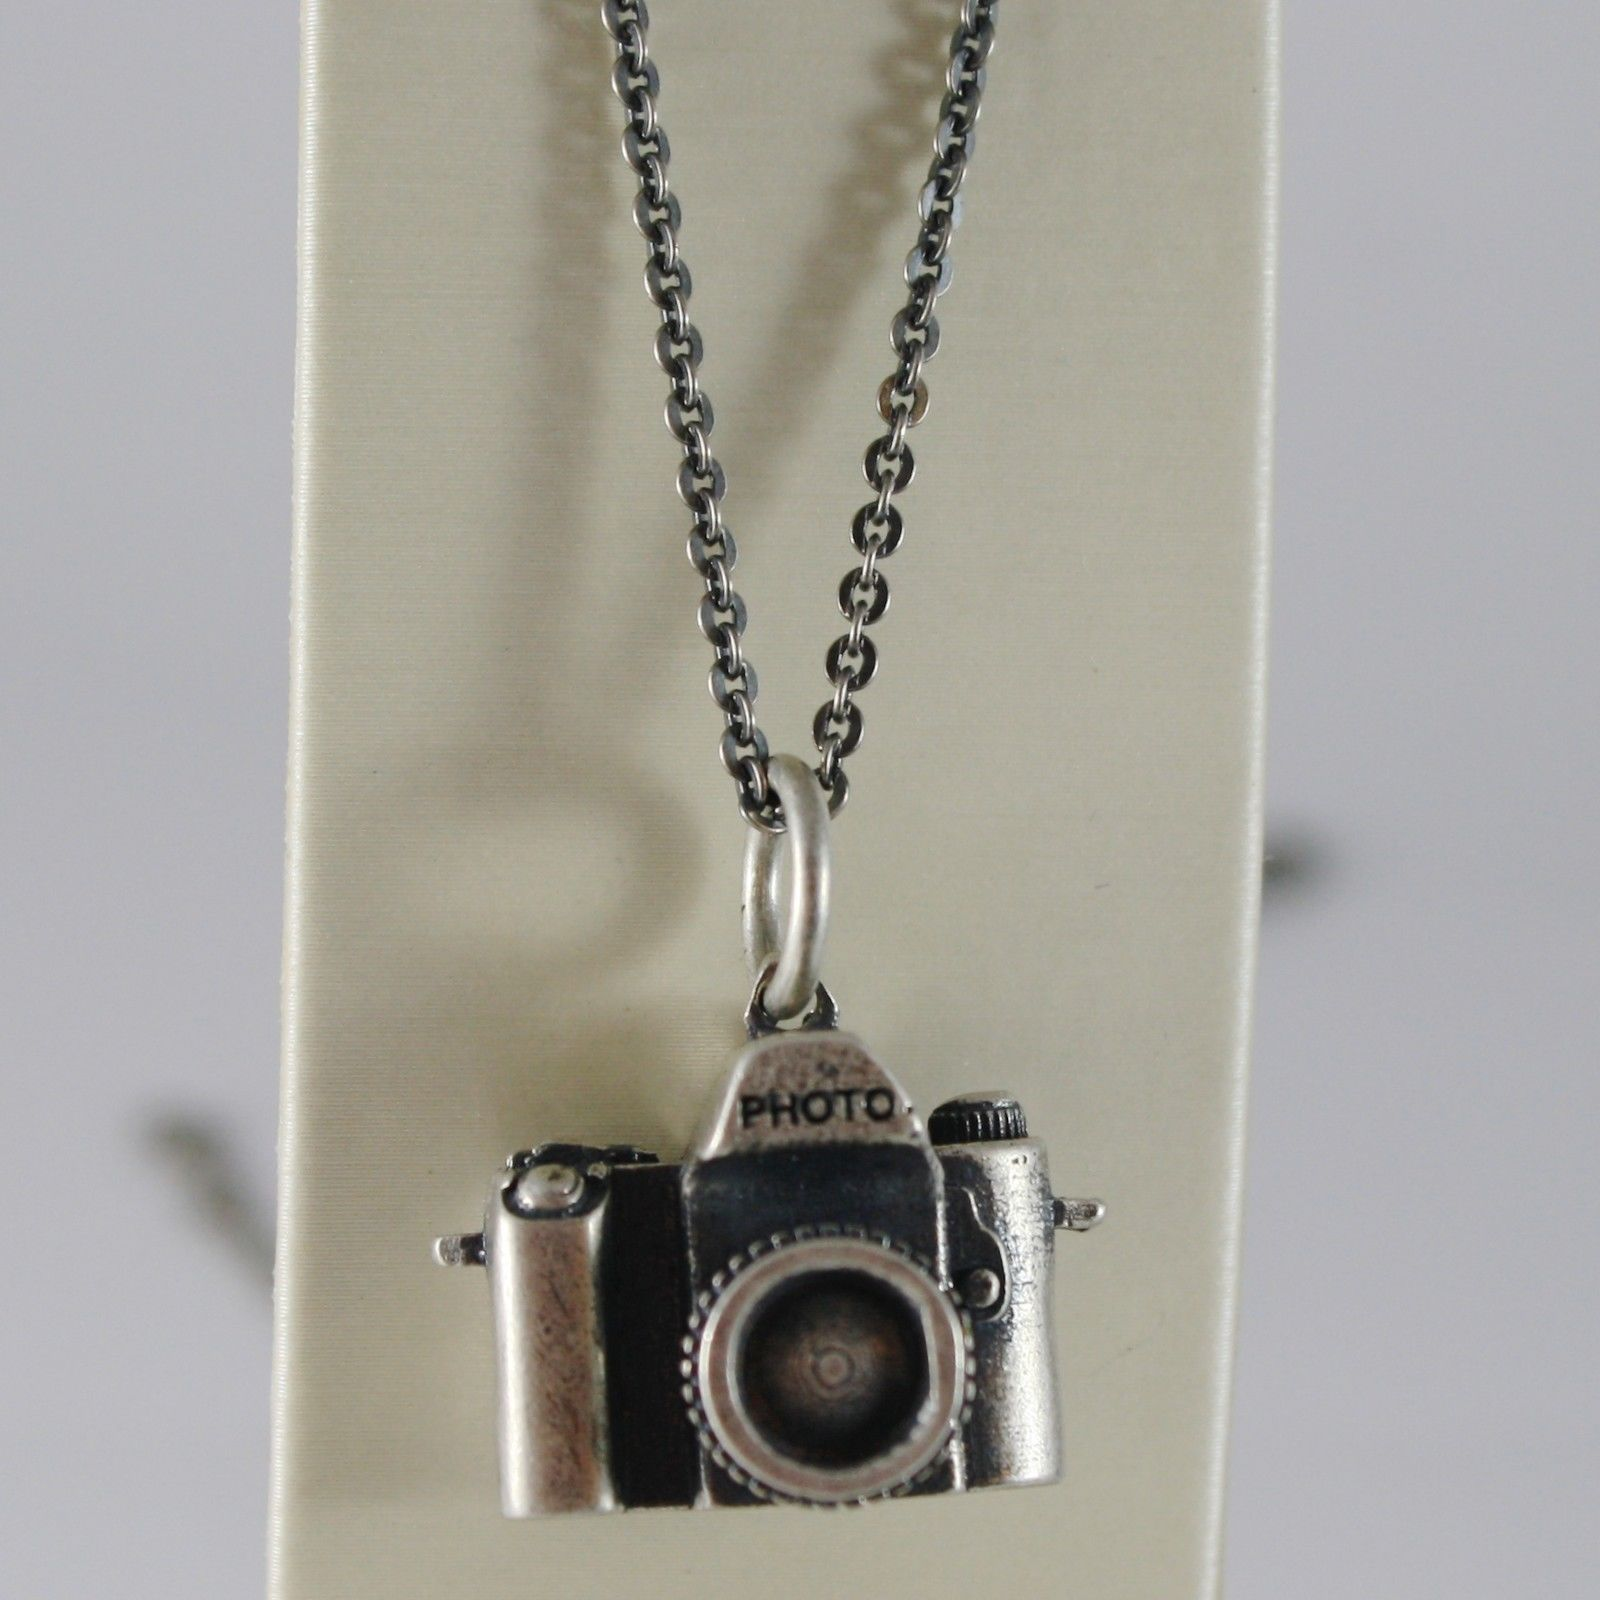 SOLID 925 BURNISHED SILVER NECKLACE DIGITAL CAMERA PHOTOGRAPHER MADE IN ITALY